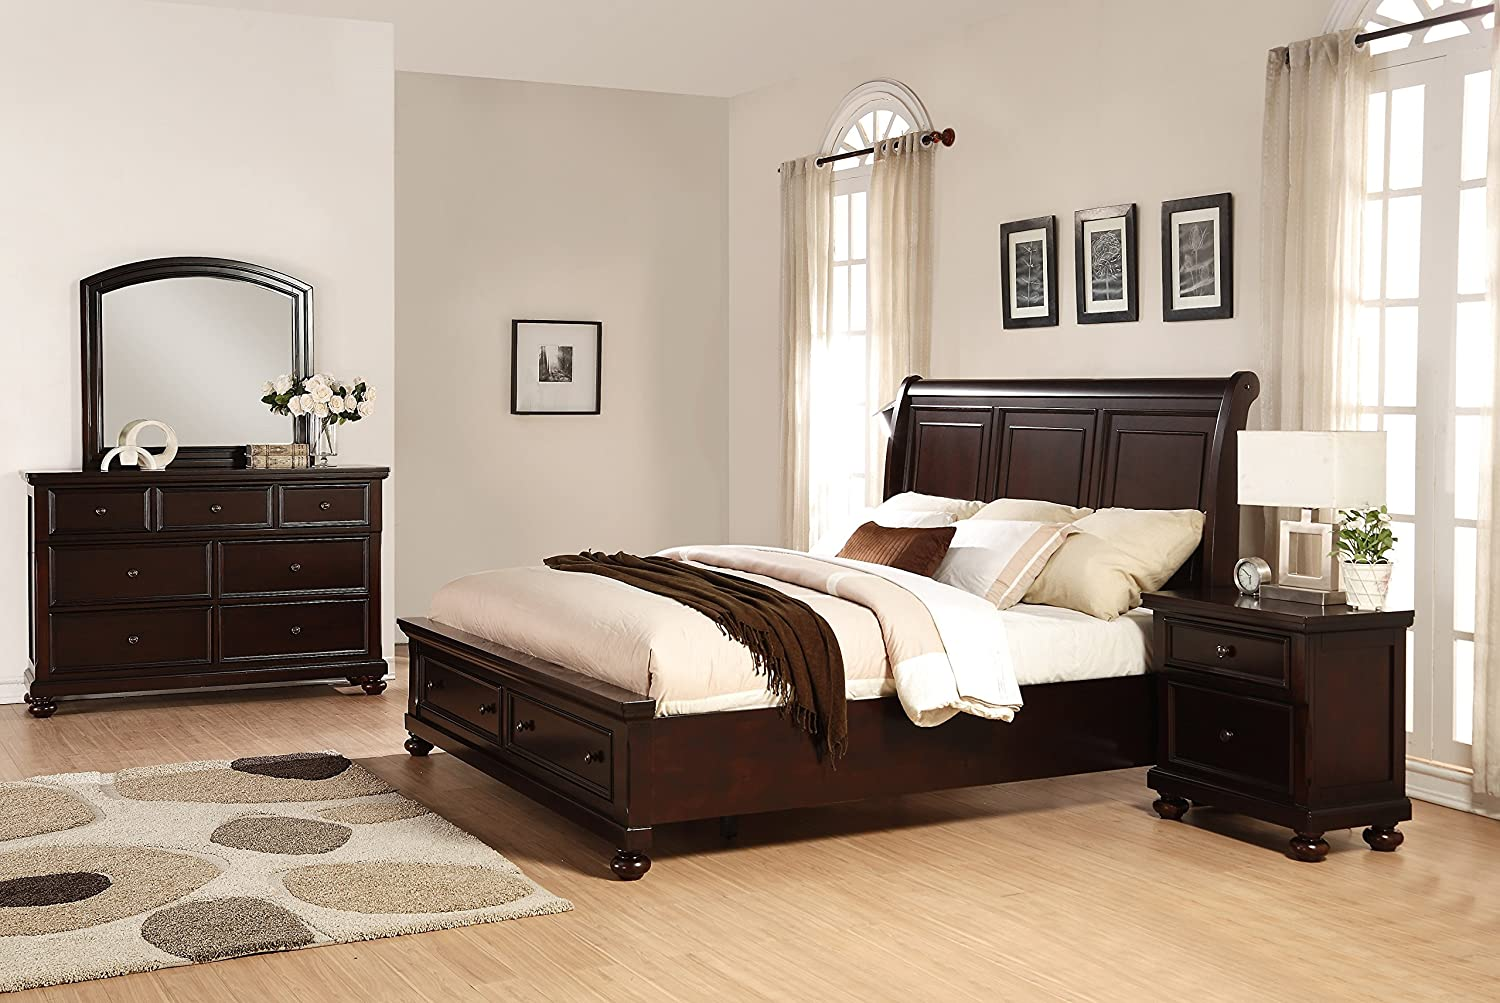 cherry bedroom set. Amazon com  Roundhill Furniture Brishland Storage Bedroom Set Includes Queen Bed Dresser Mirror and Nighstand Rustic Cherry Kitchen Dining